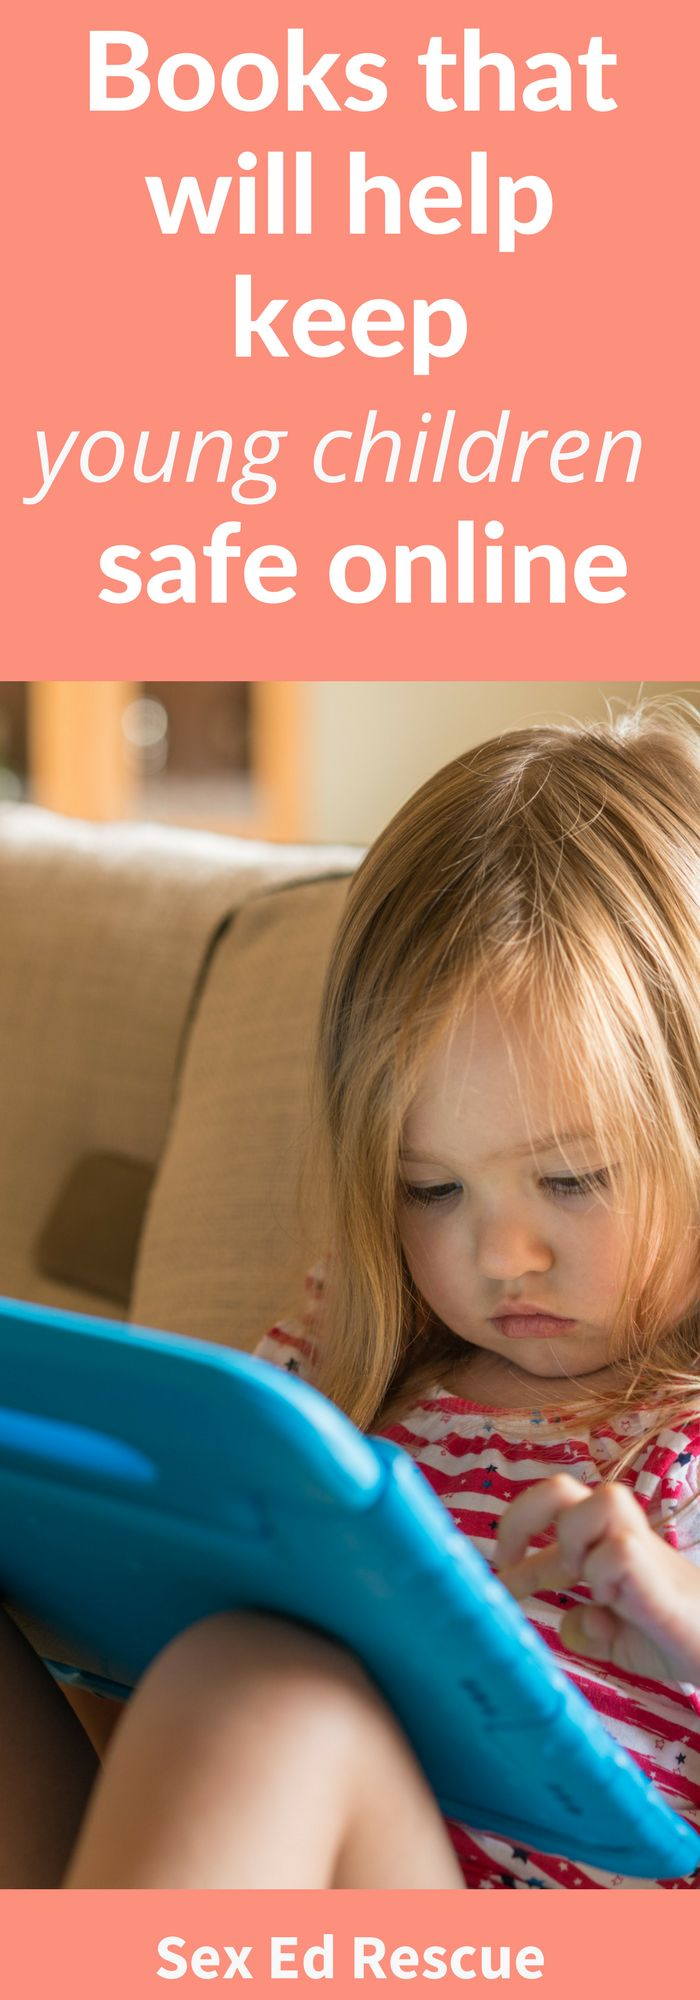 Cybersafety books that will help keep young children safe in the online world